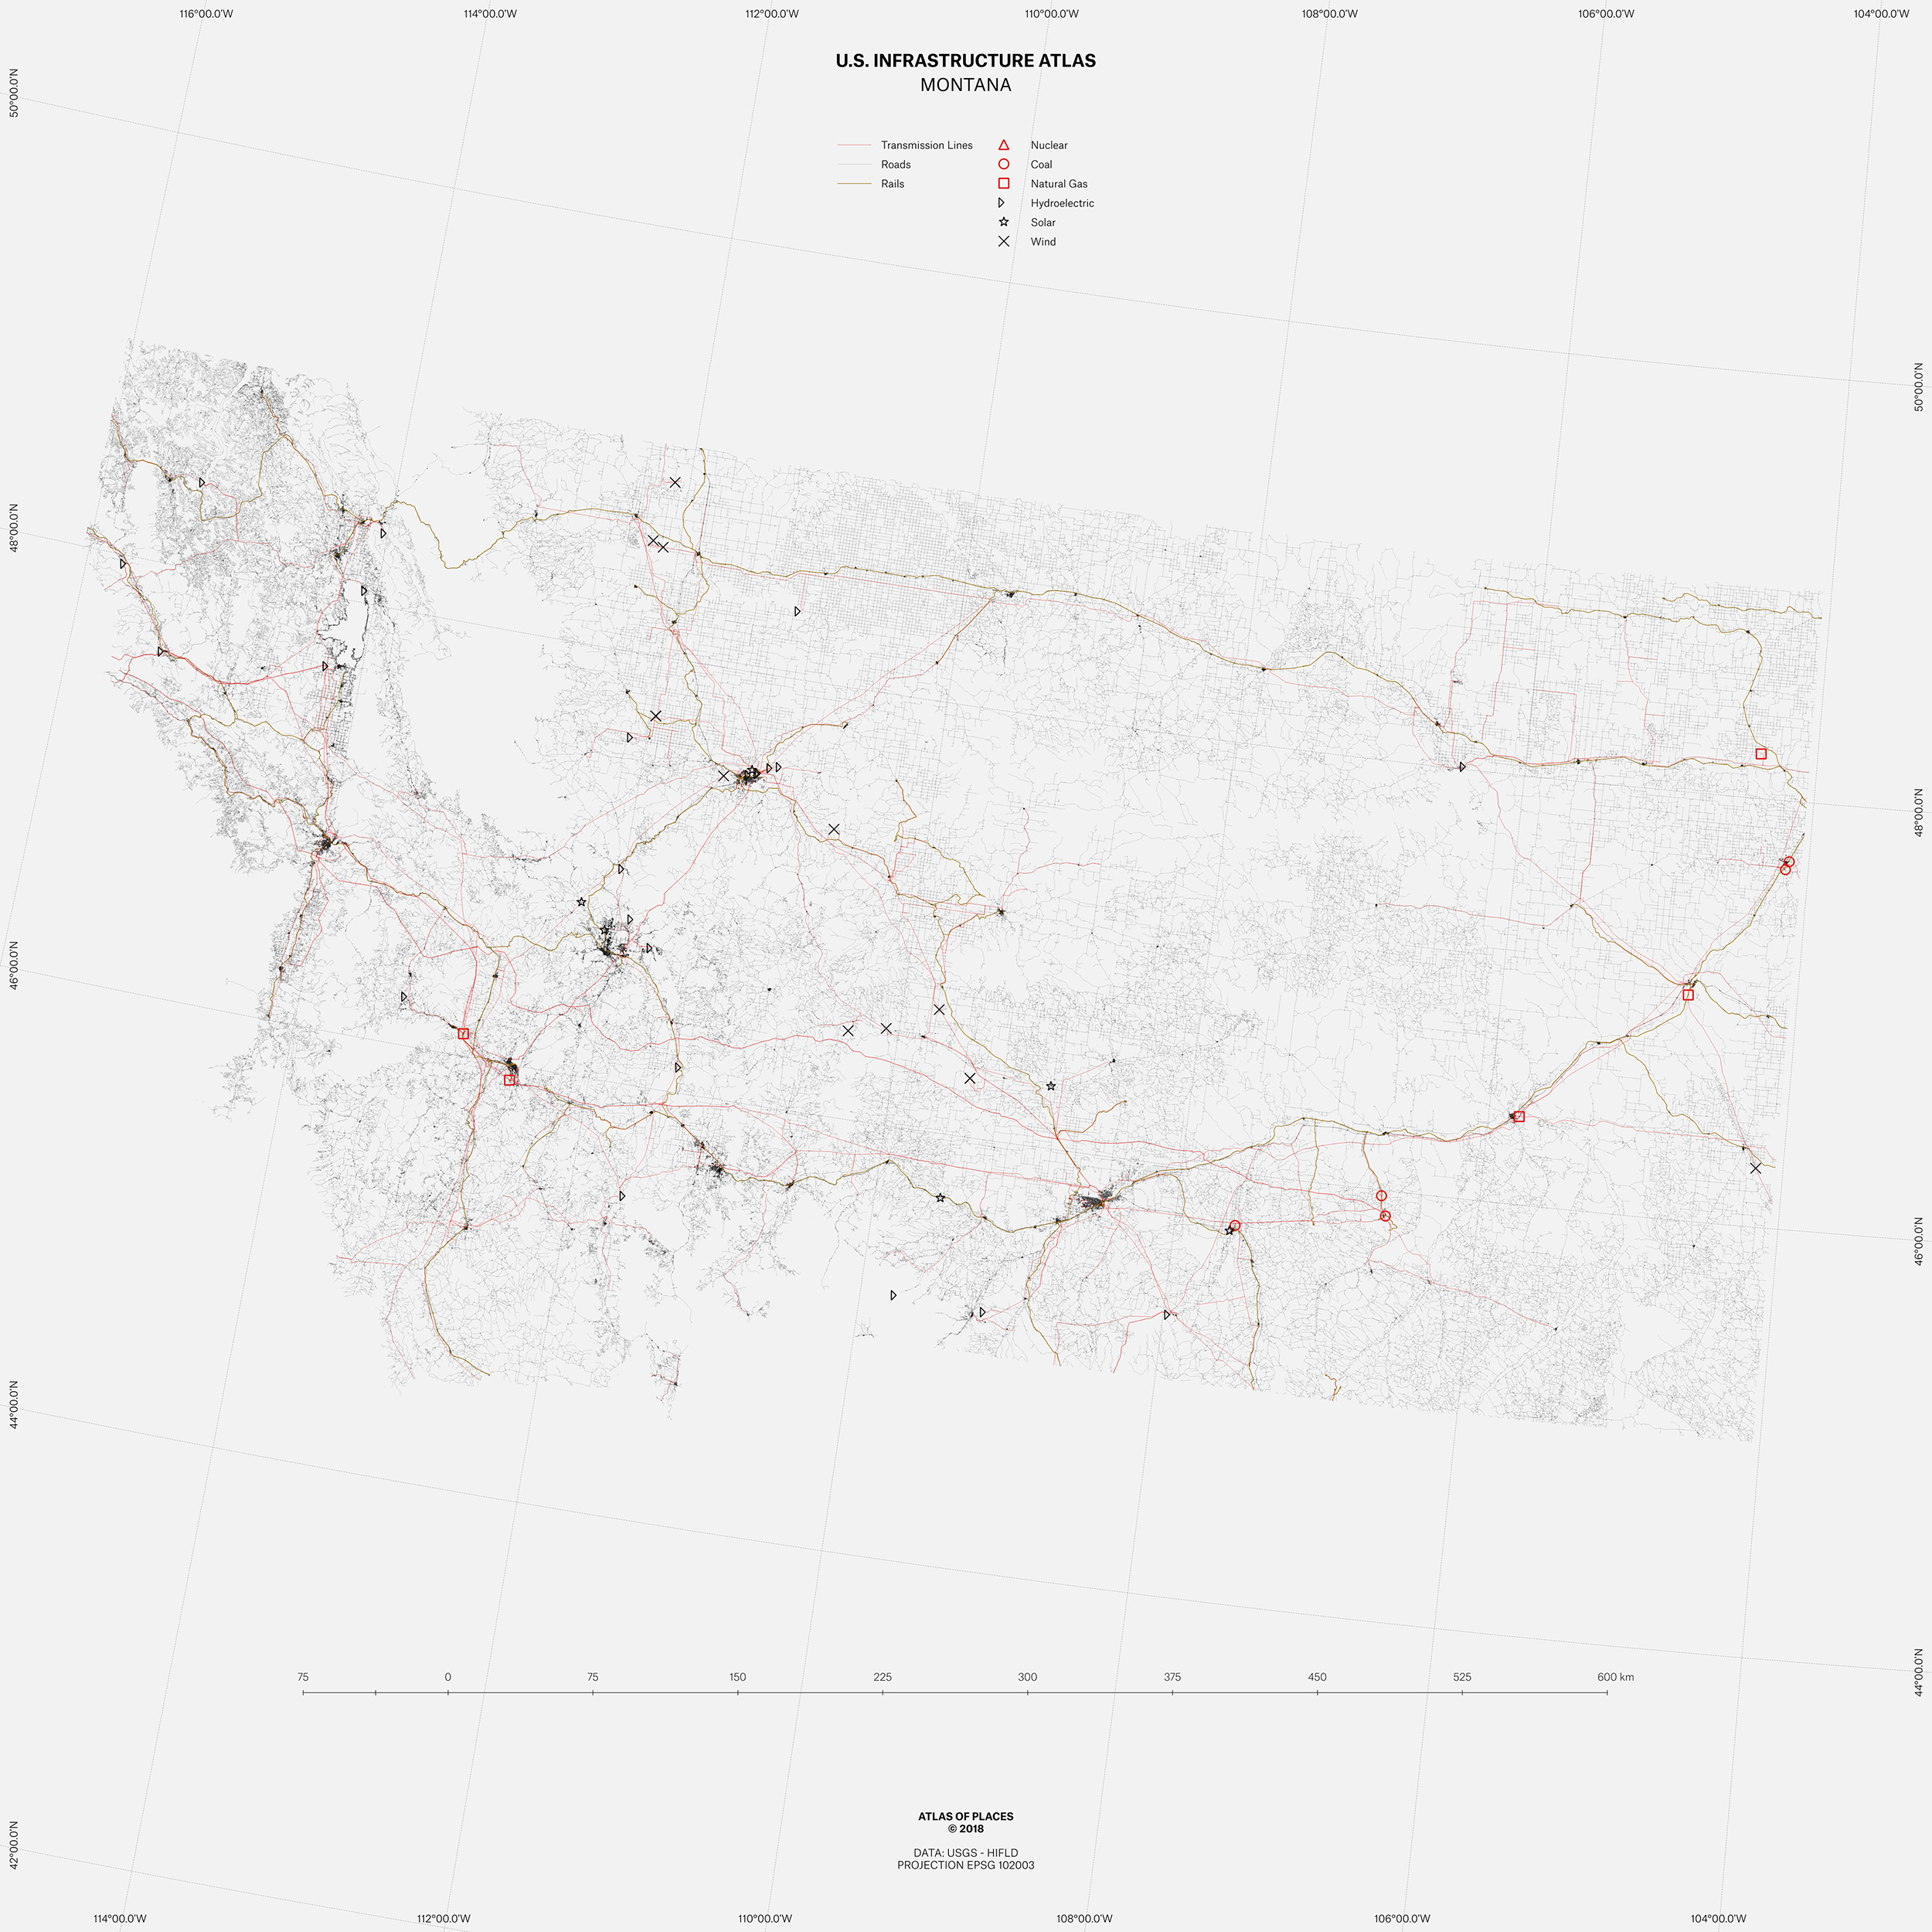 Atlas of Infrastructure III